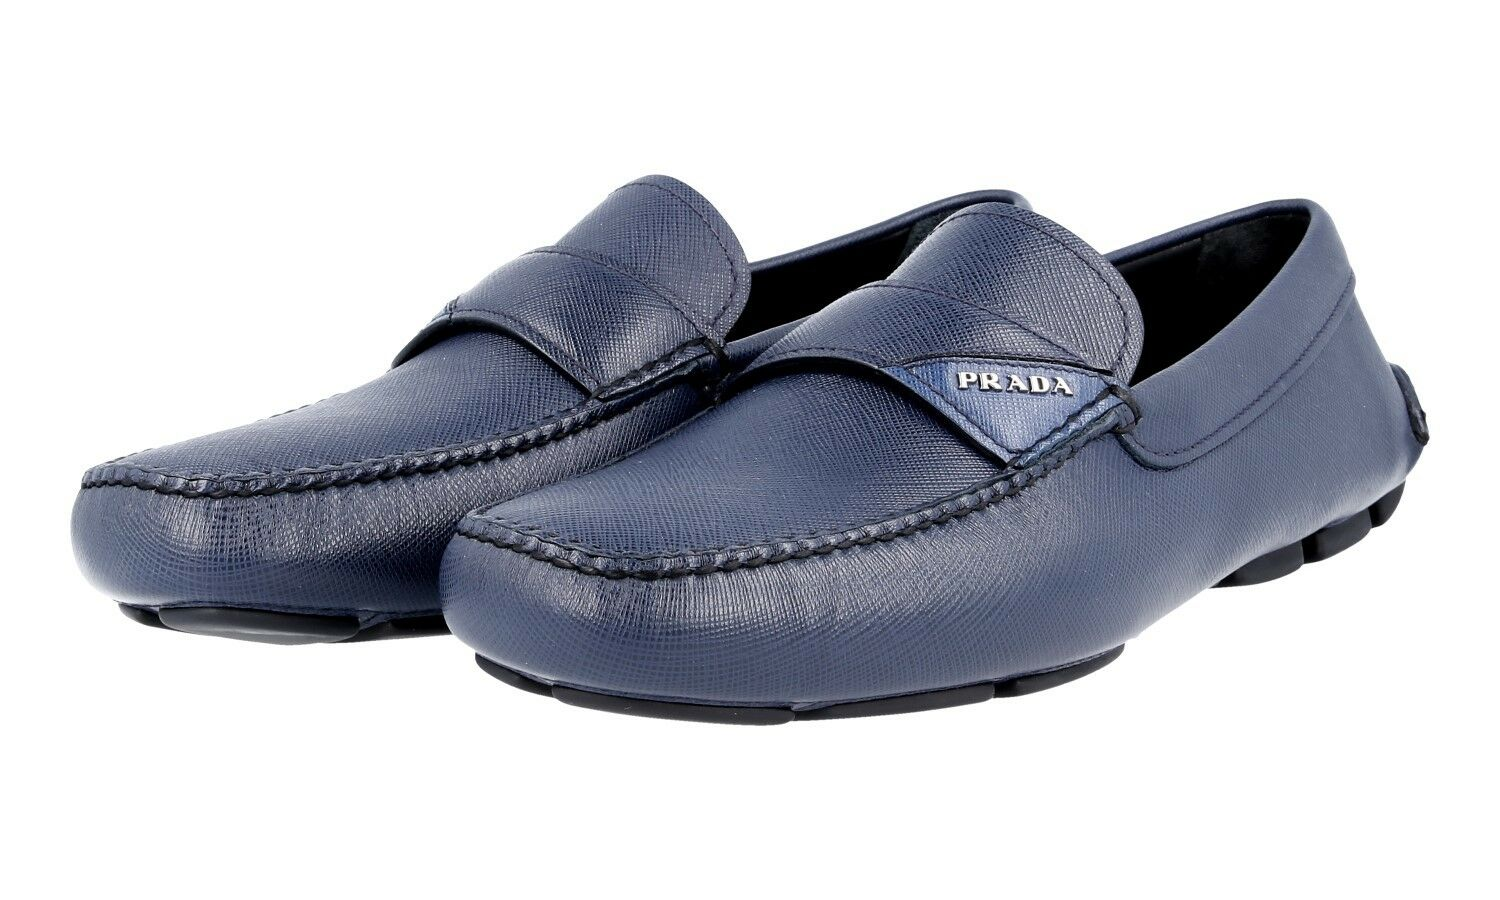 LUXUS PRADA SAFFIANO SLIPPER LOAFER SCHUHE 2DD125 BLAU NEU NEW 9,5 43,5 44